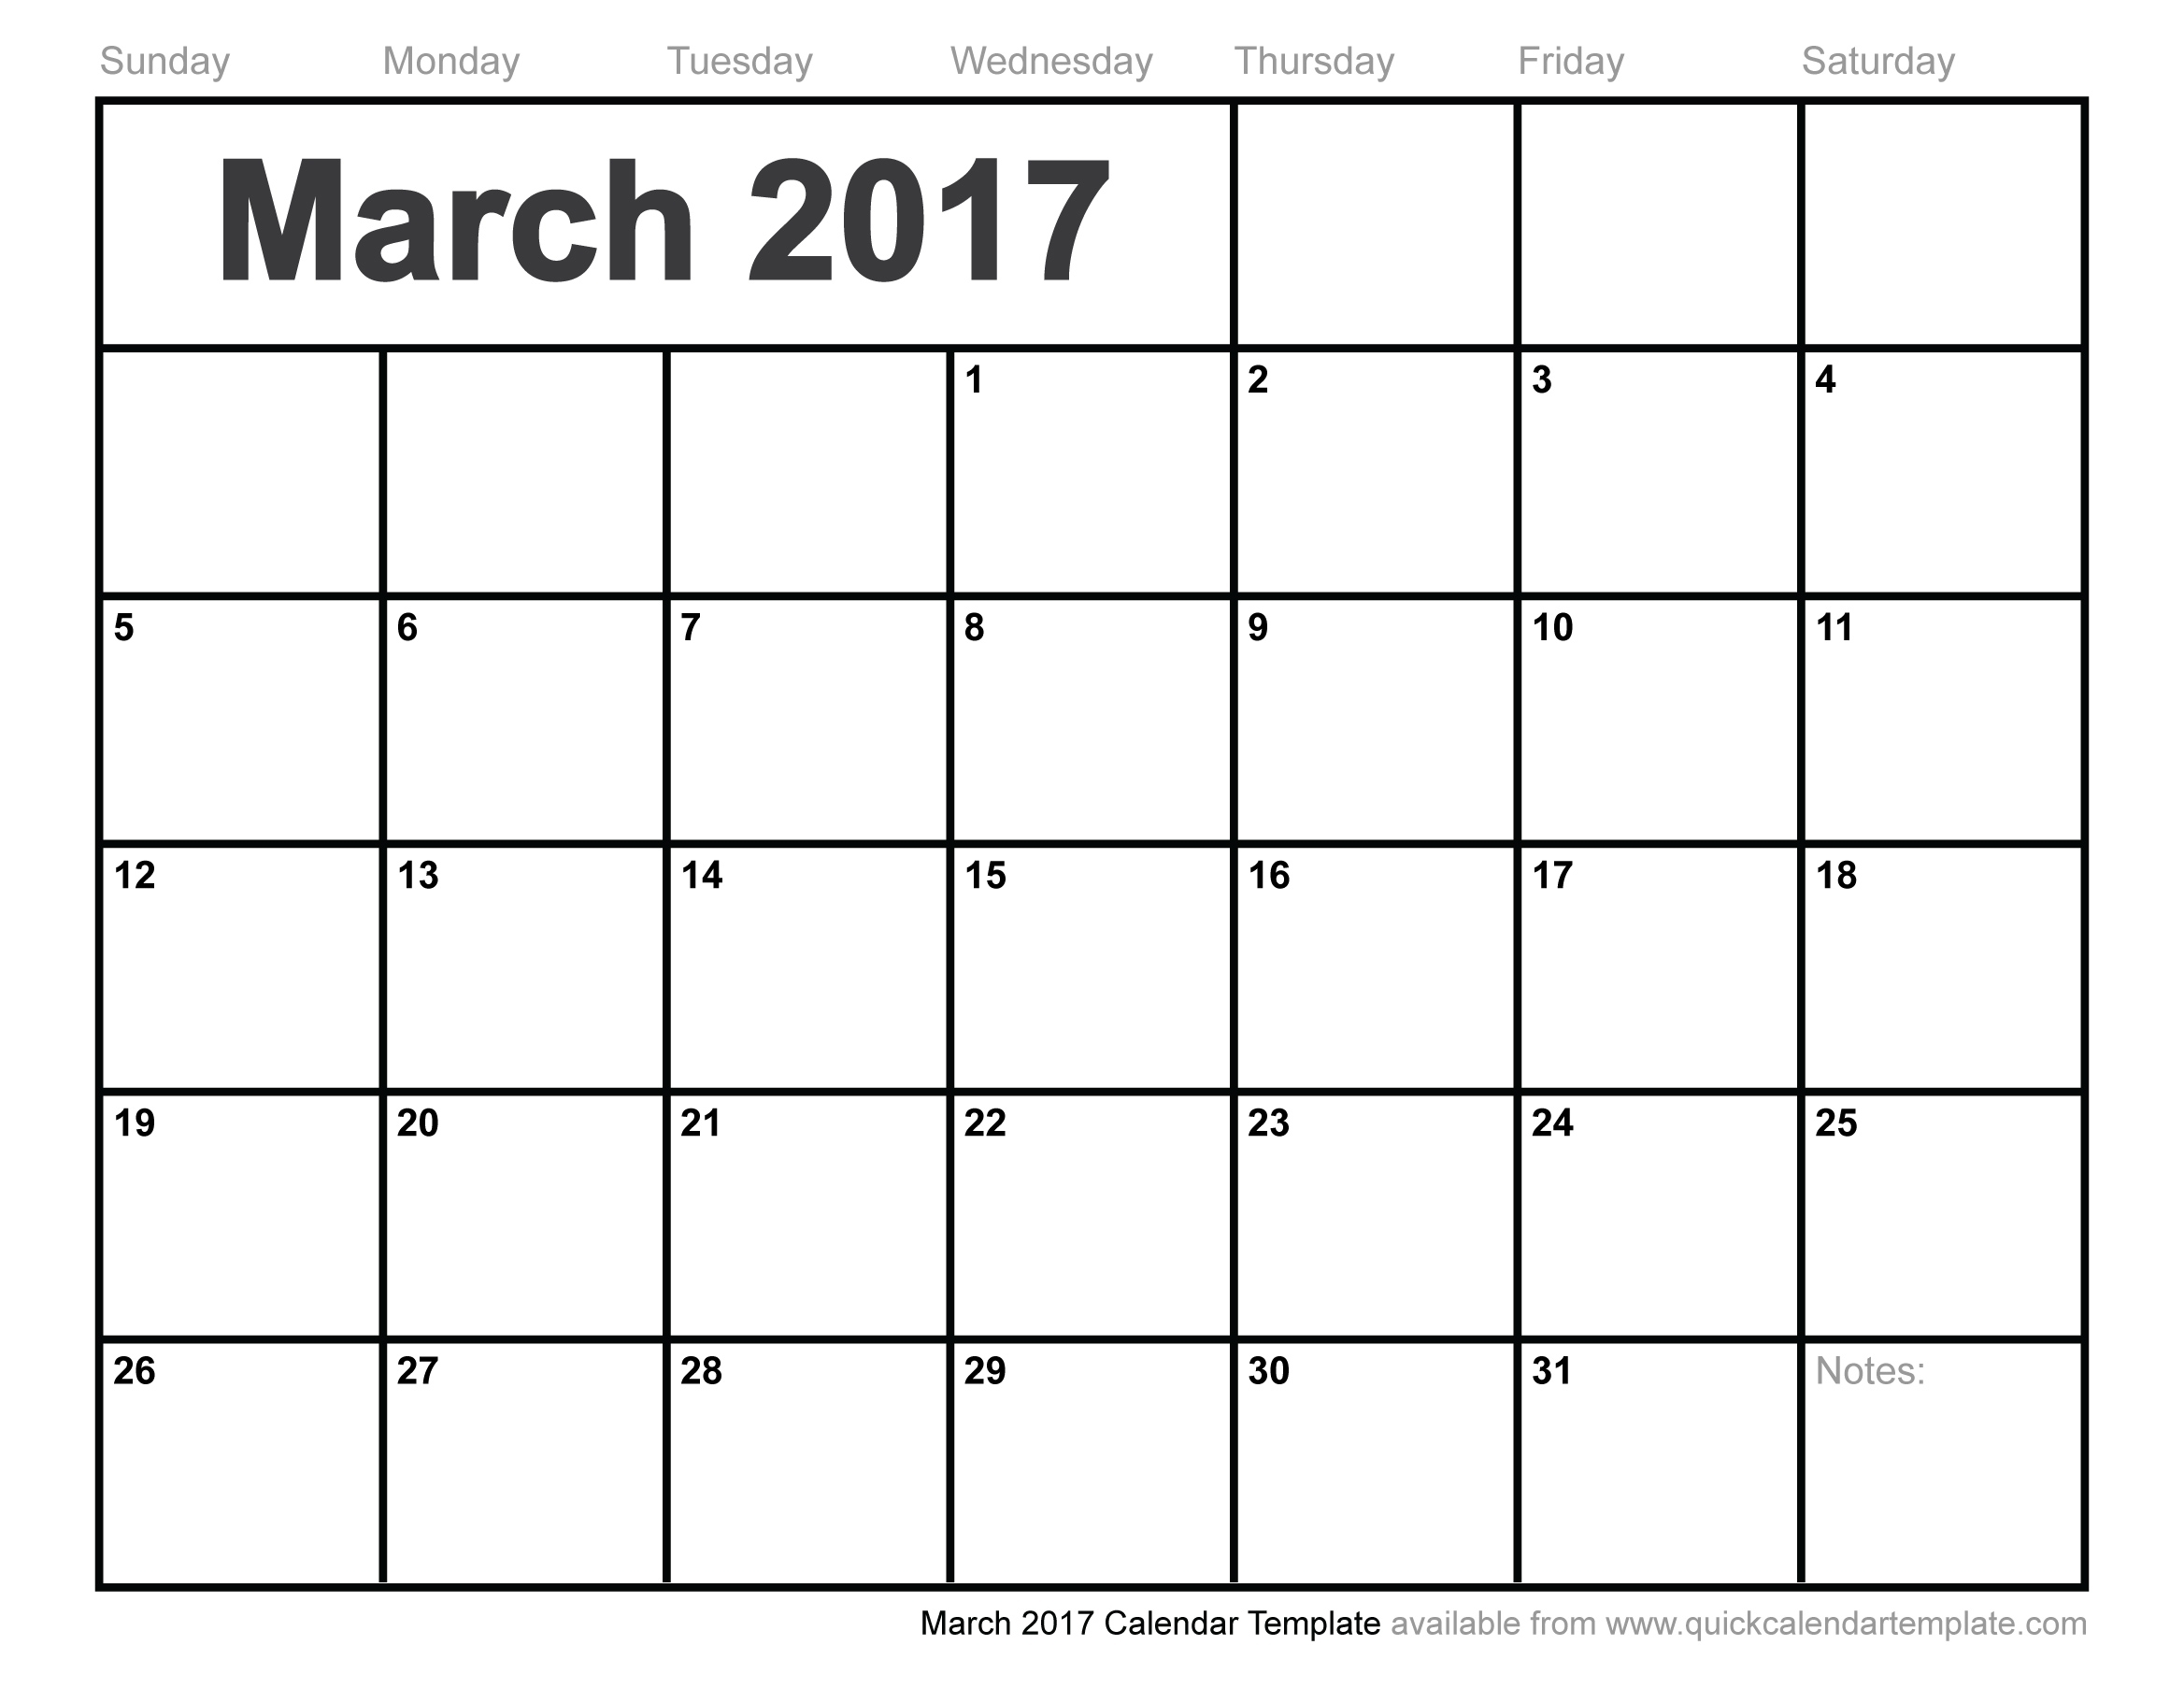 Free-Blank-Printable-March-2017-Calendar-Template pertaining to Blank Screensaver Template To Print